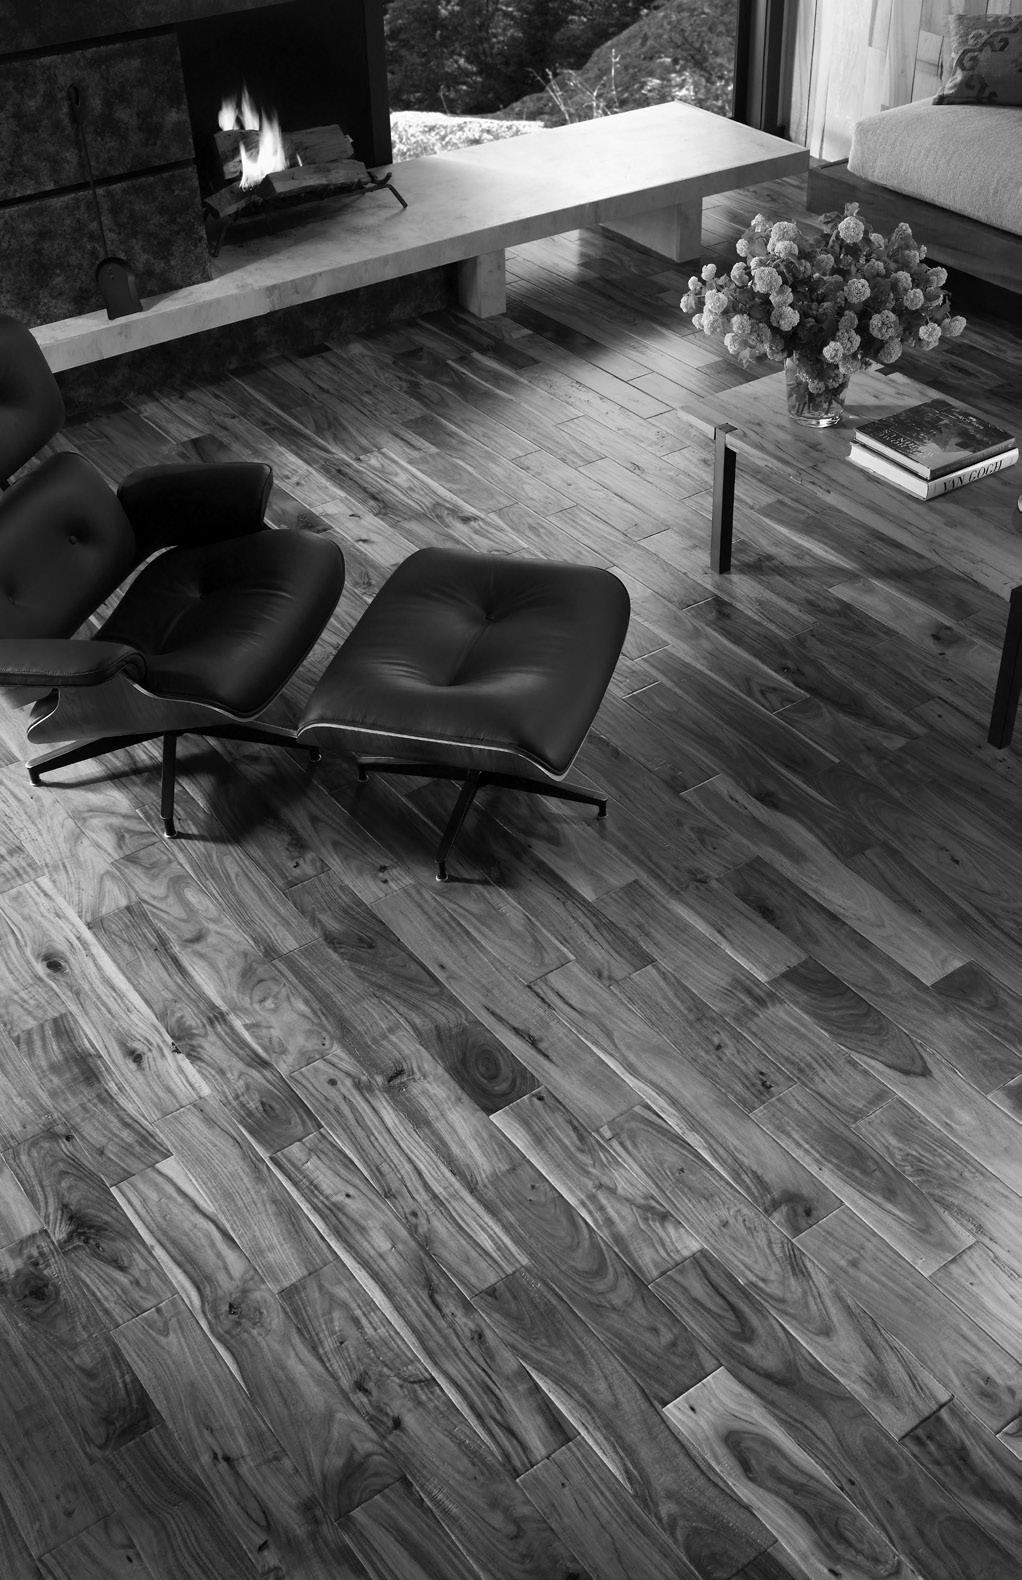 bona 4 piece hardwood floor care system of hardwood flooring care and cleaning tips pdf within armstrong hardwood flooring